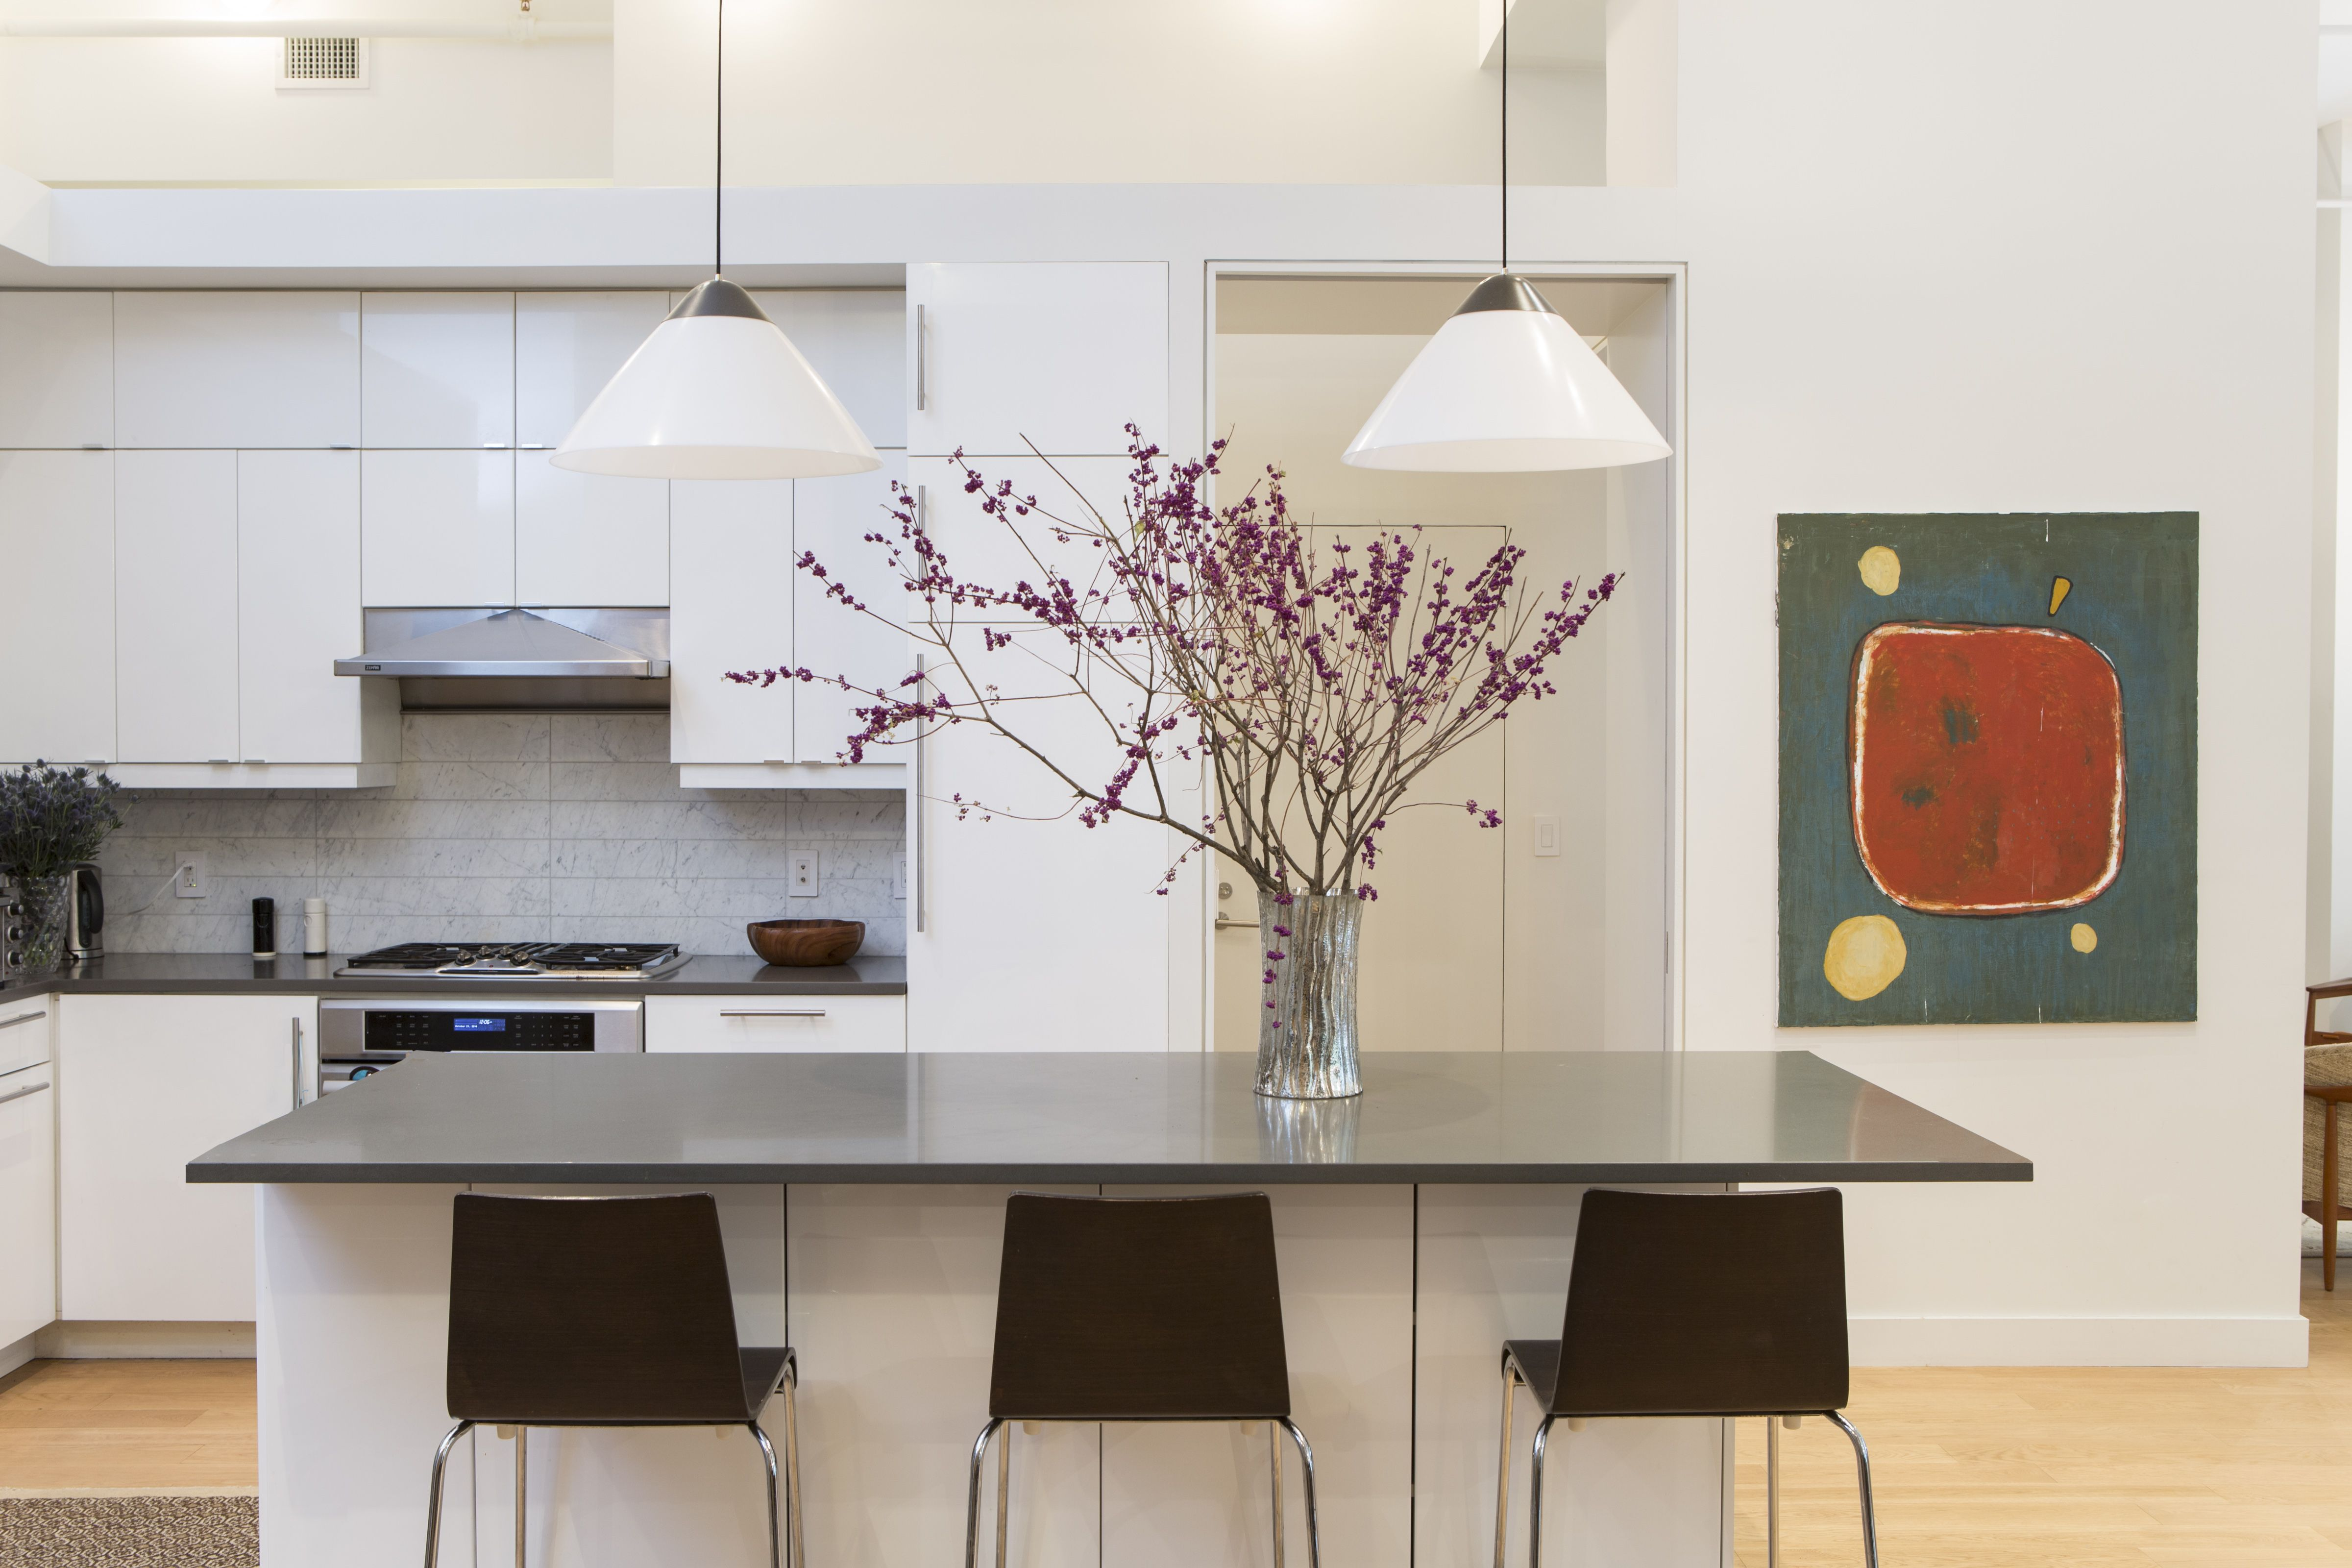 3 Things to Consider Before Getting an Ikea Kitchen